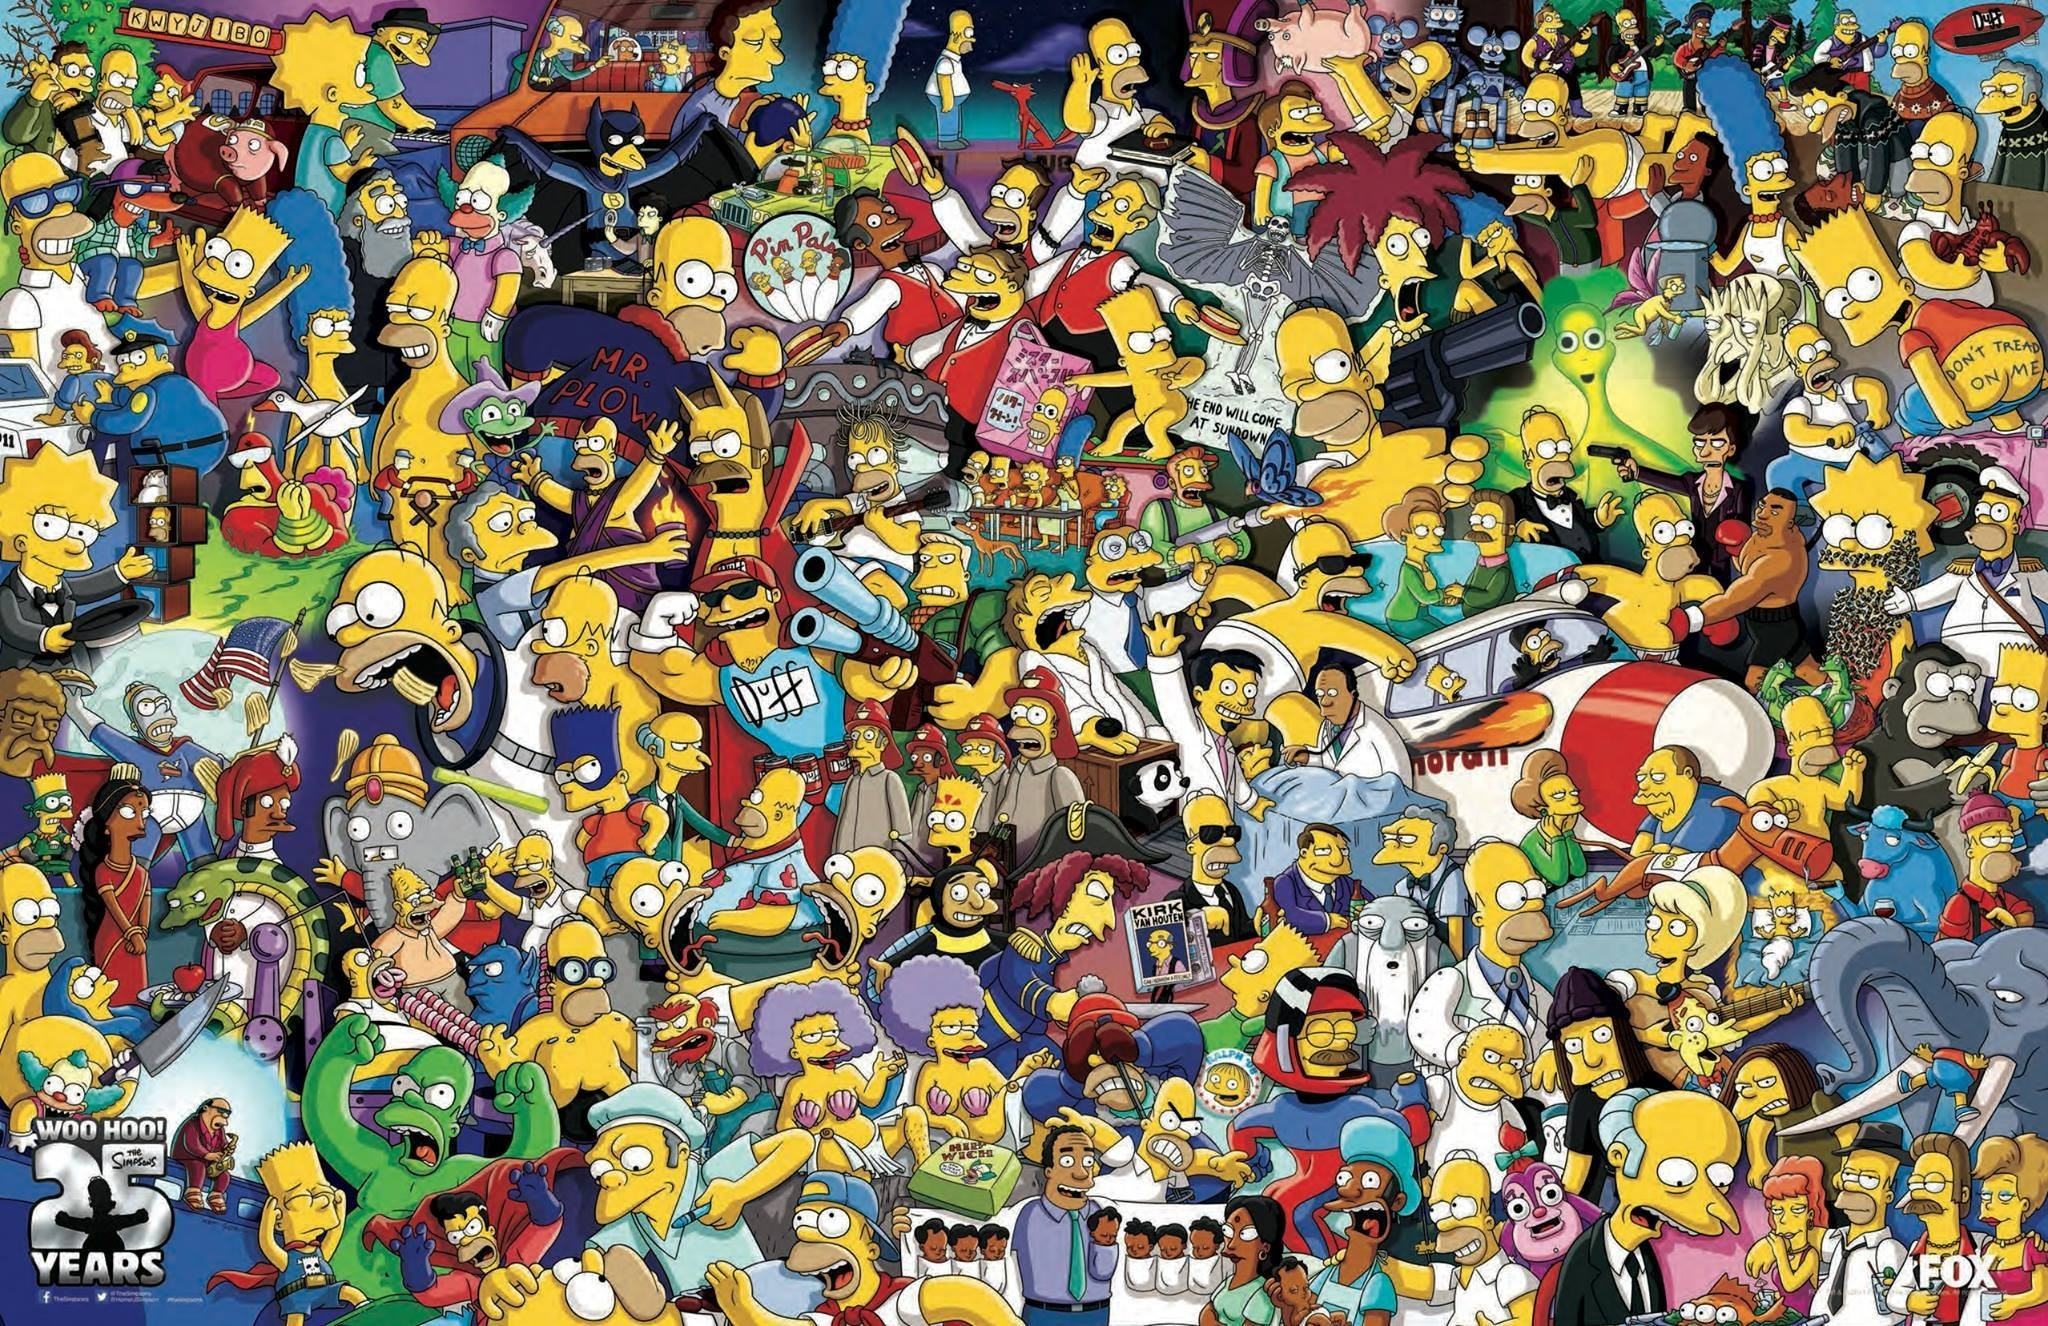 1920x1200 Wallpapers Imac Homer Simpson Cool Hd Mac Apple From Simpsons